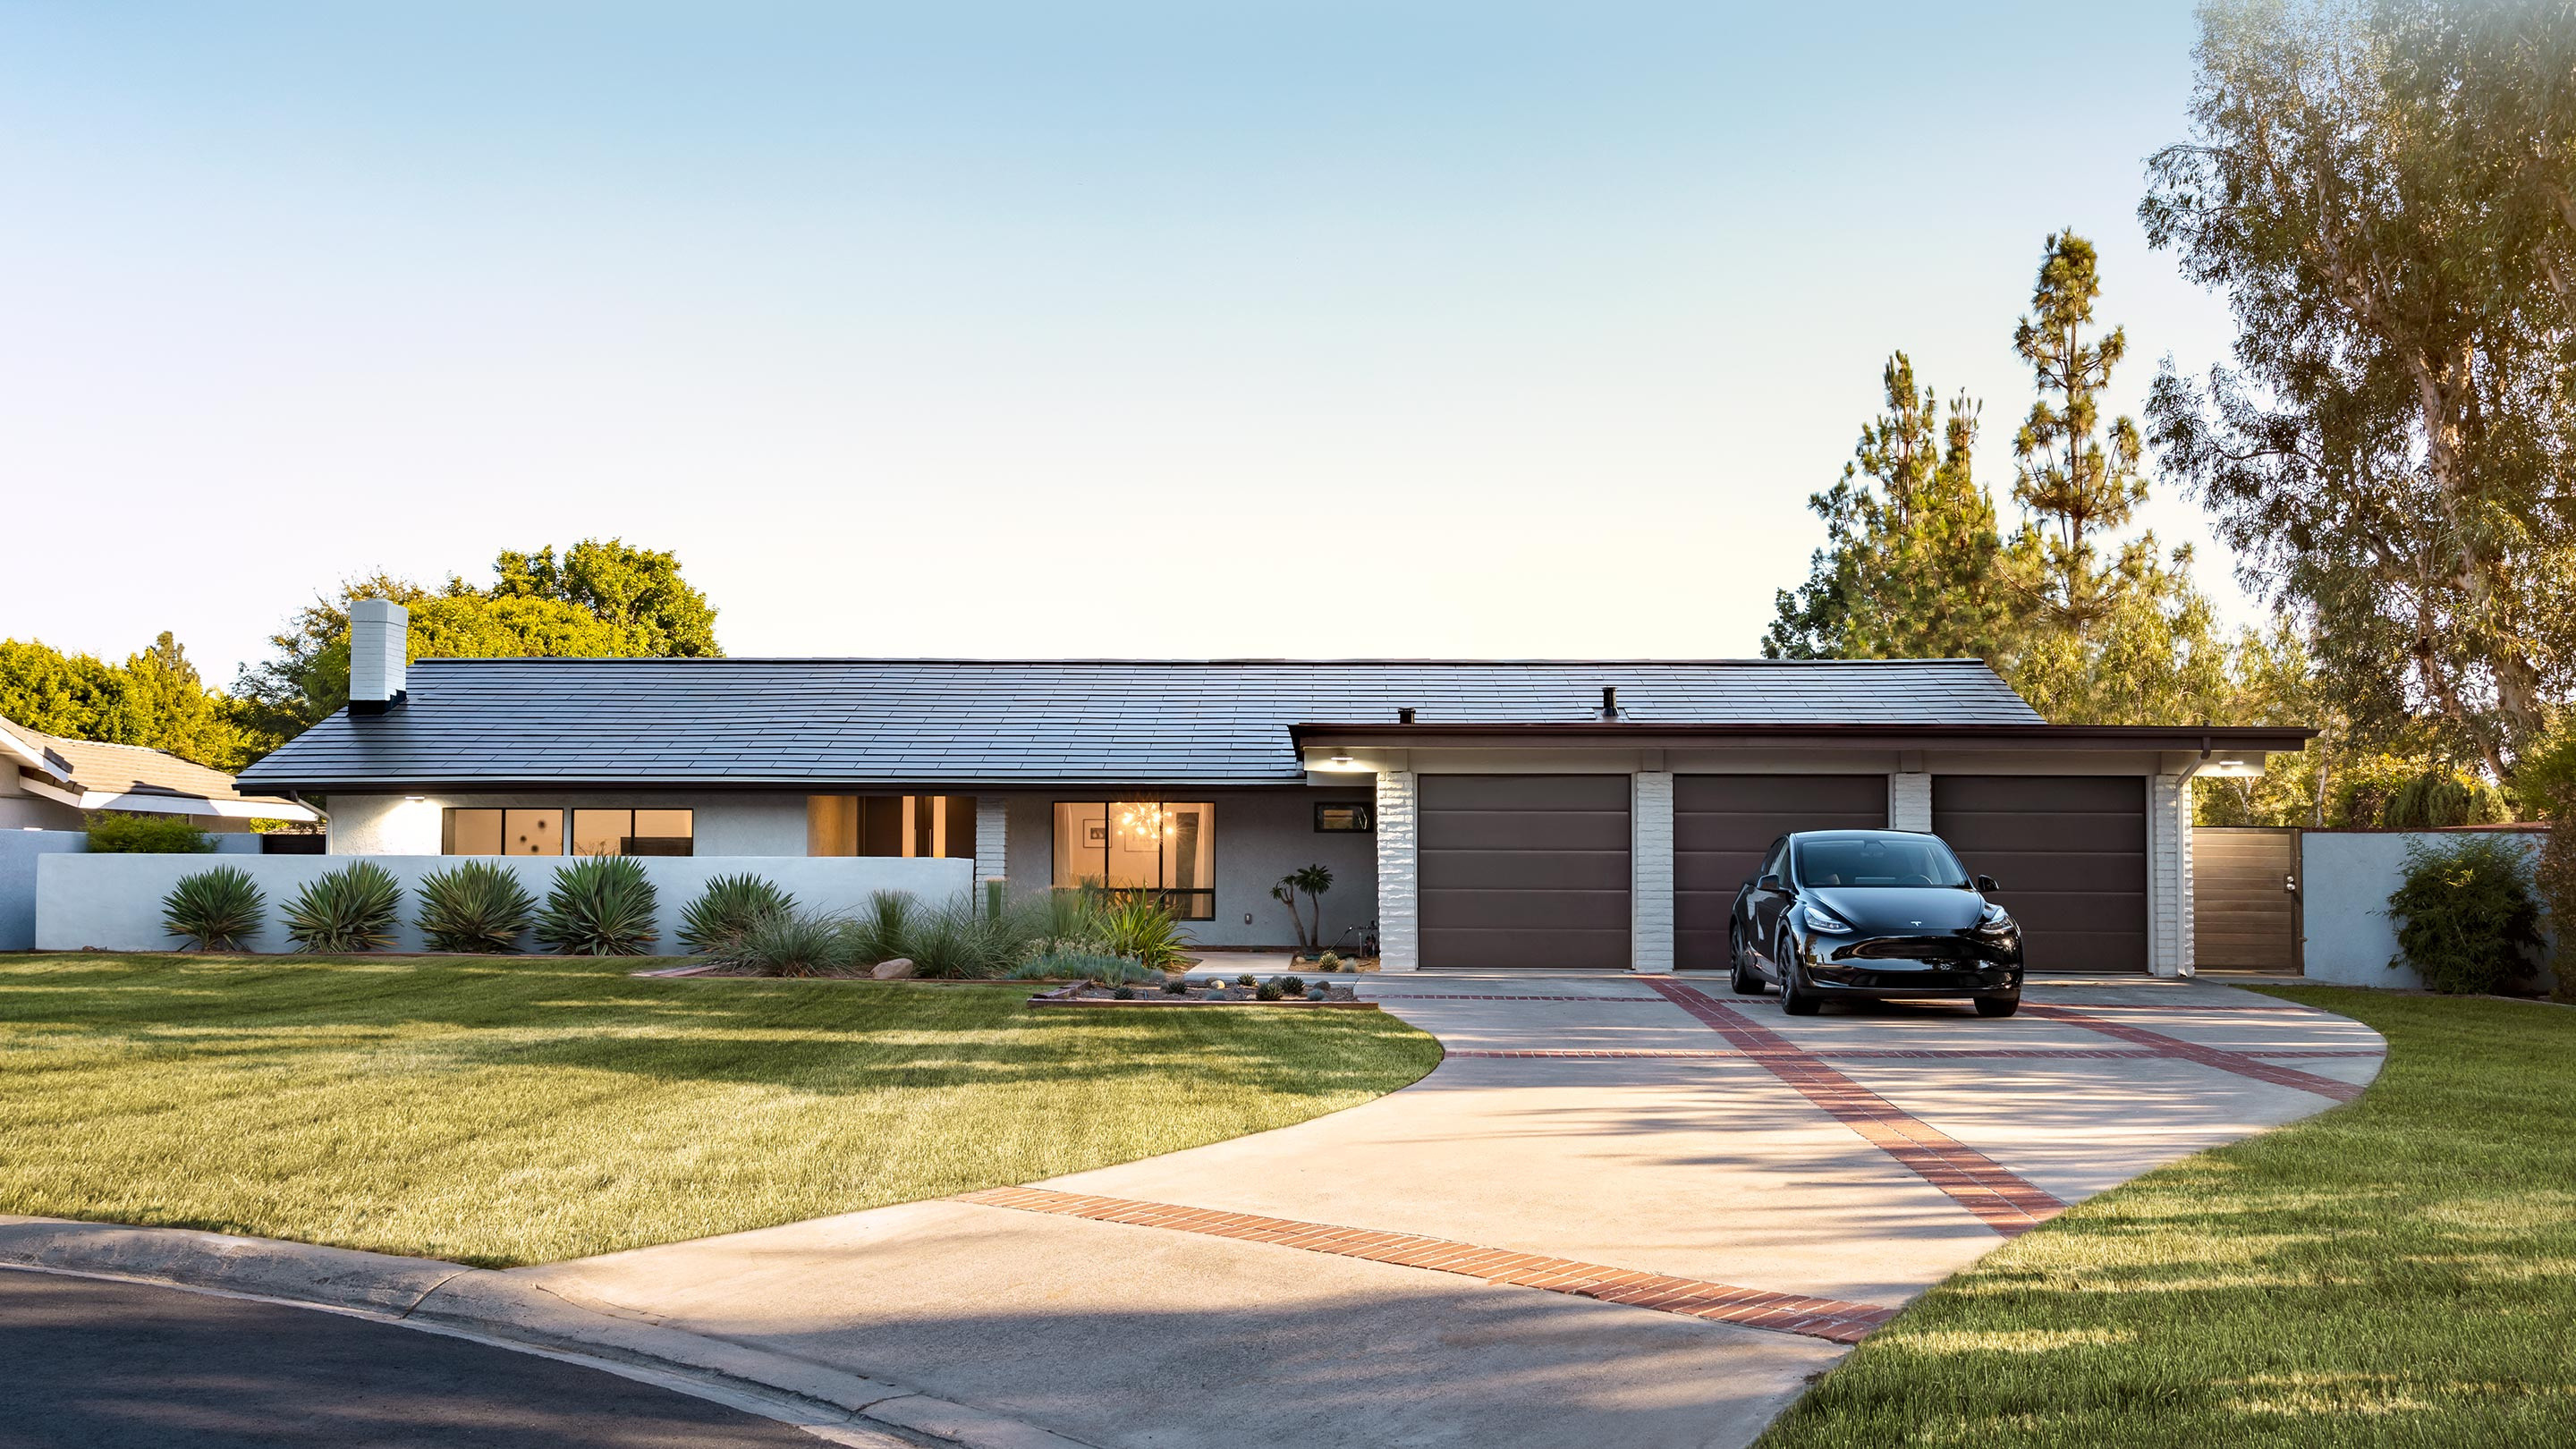 Home outfitted with Tesla Solar Roof